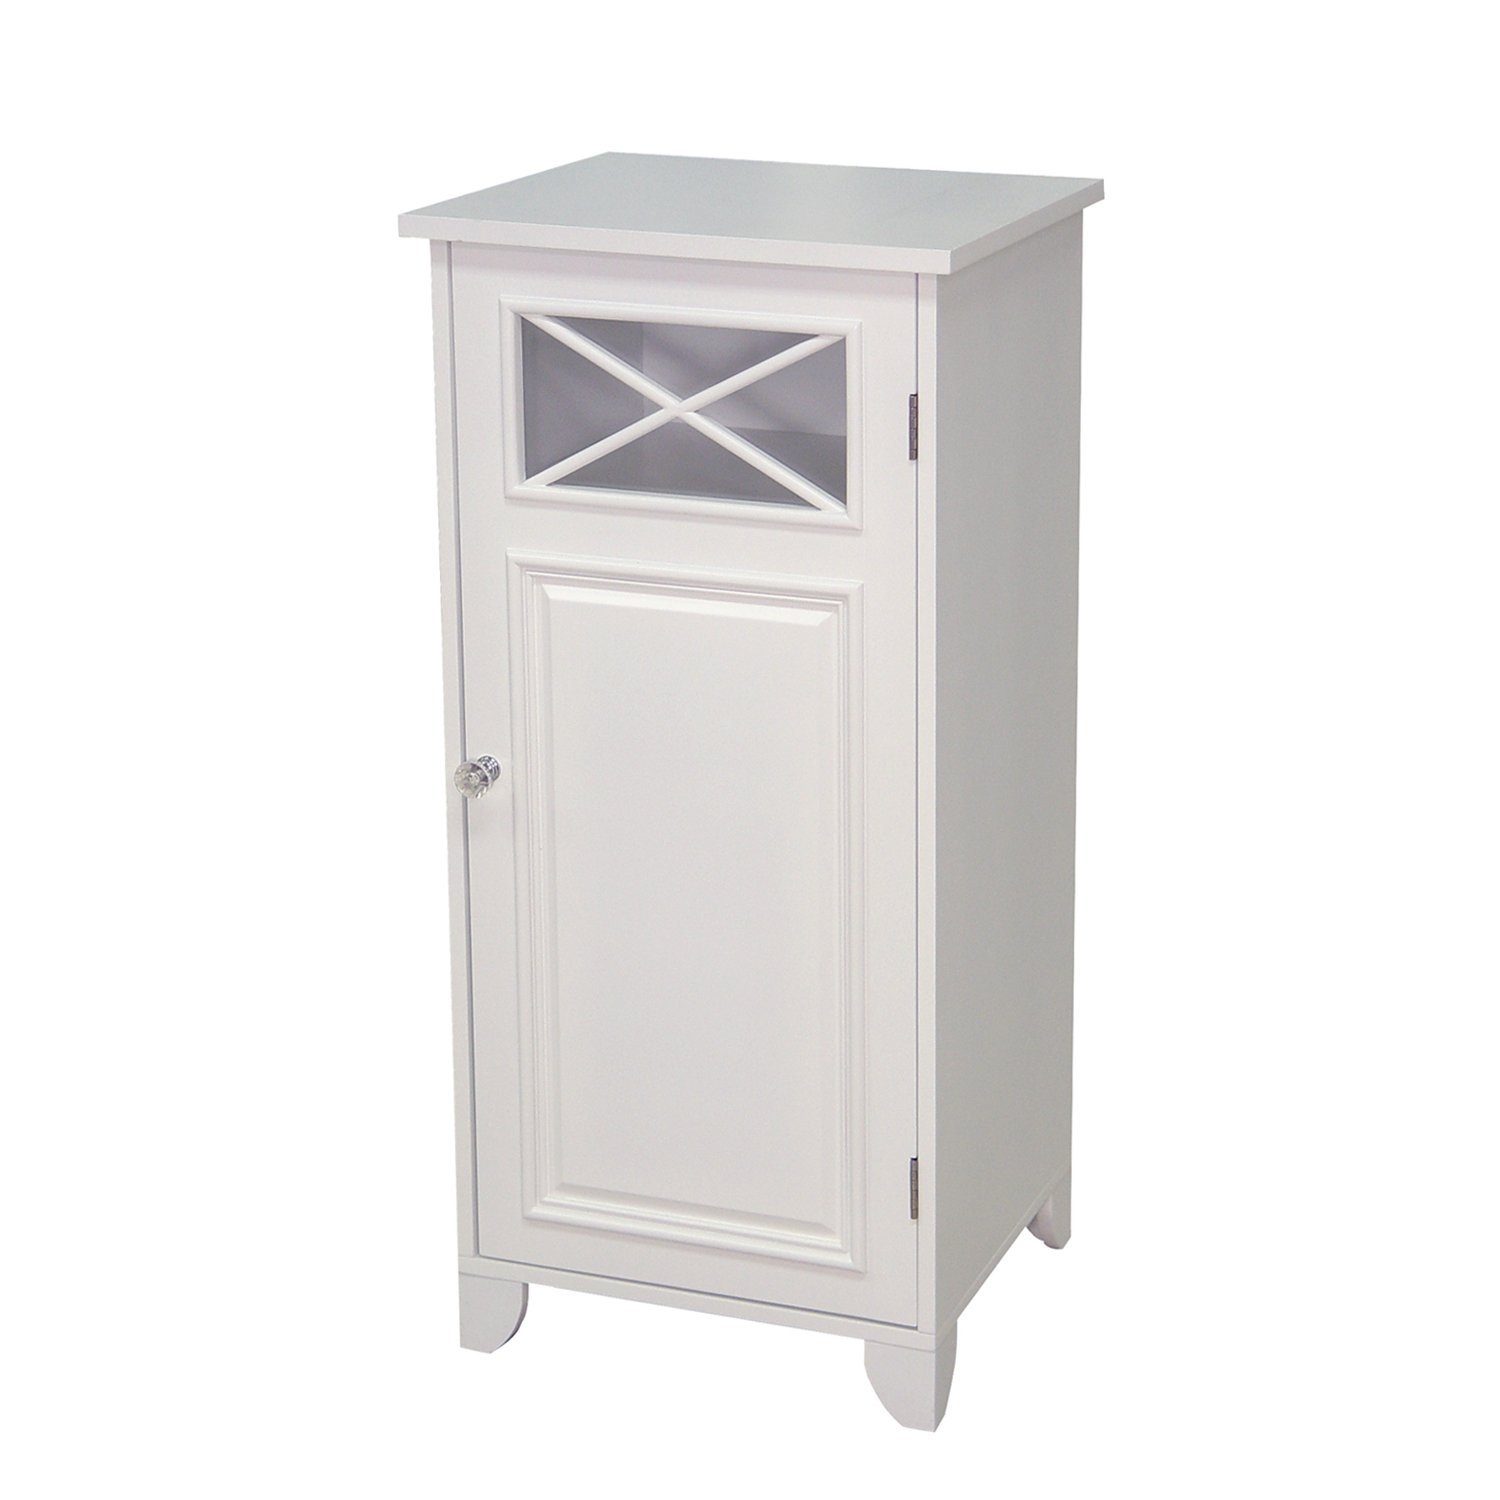 elegant home fashions dawson bathroom floor cabinet with single door